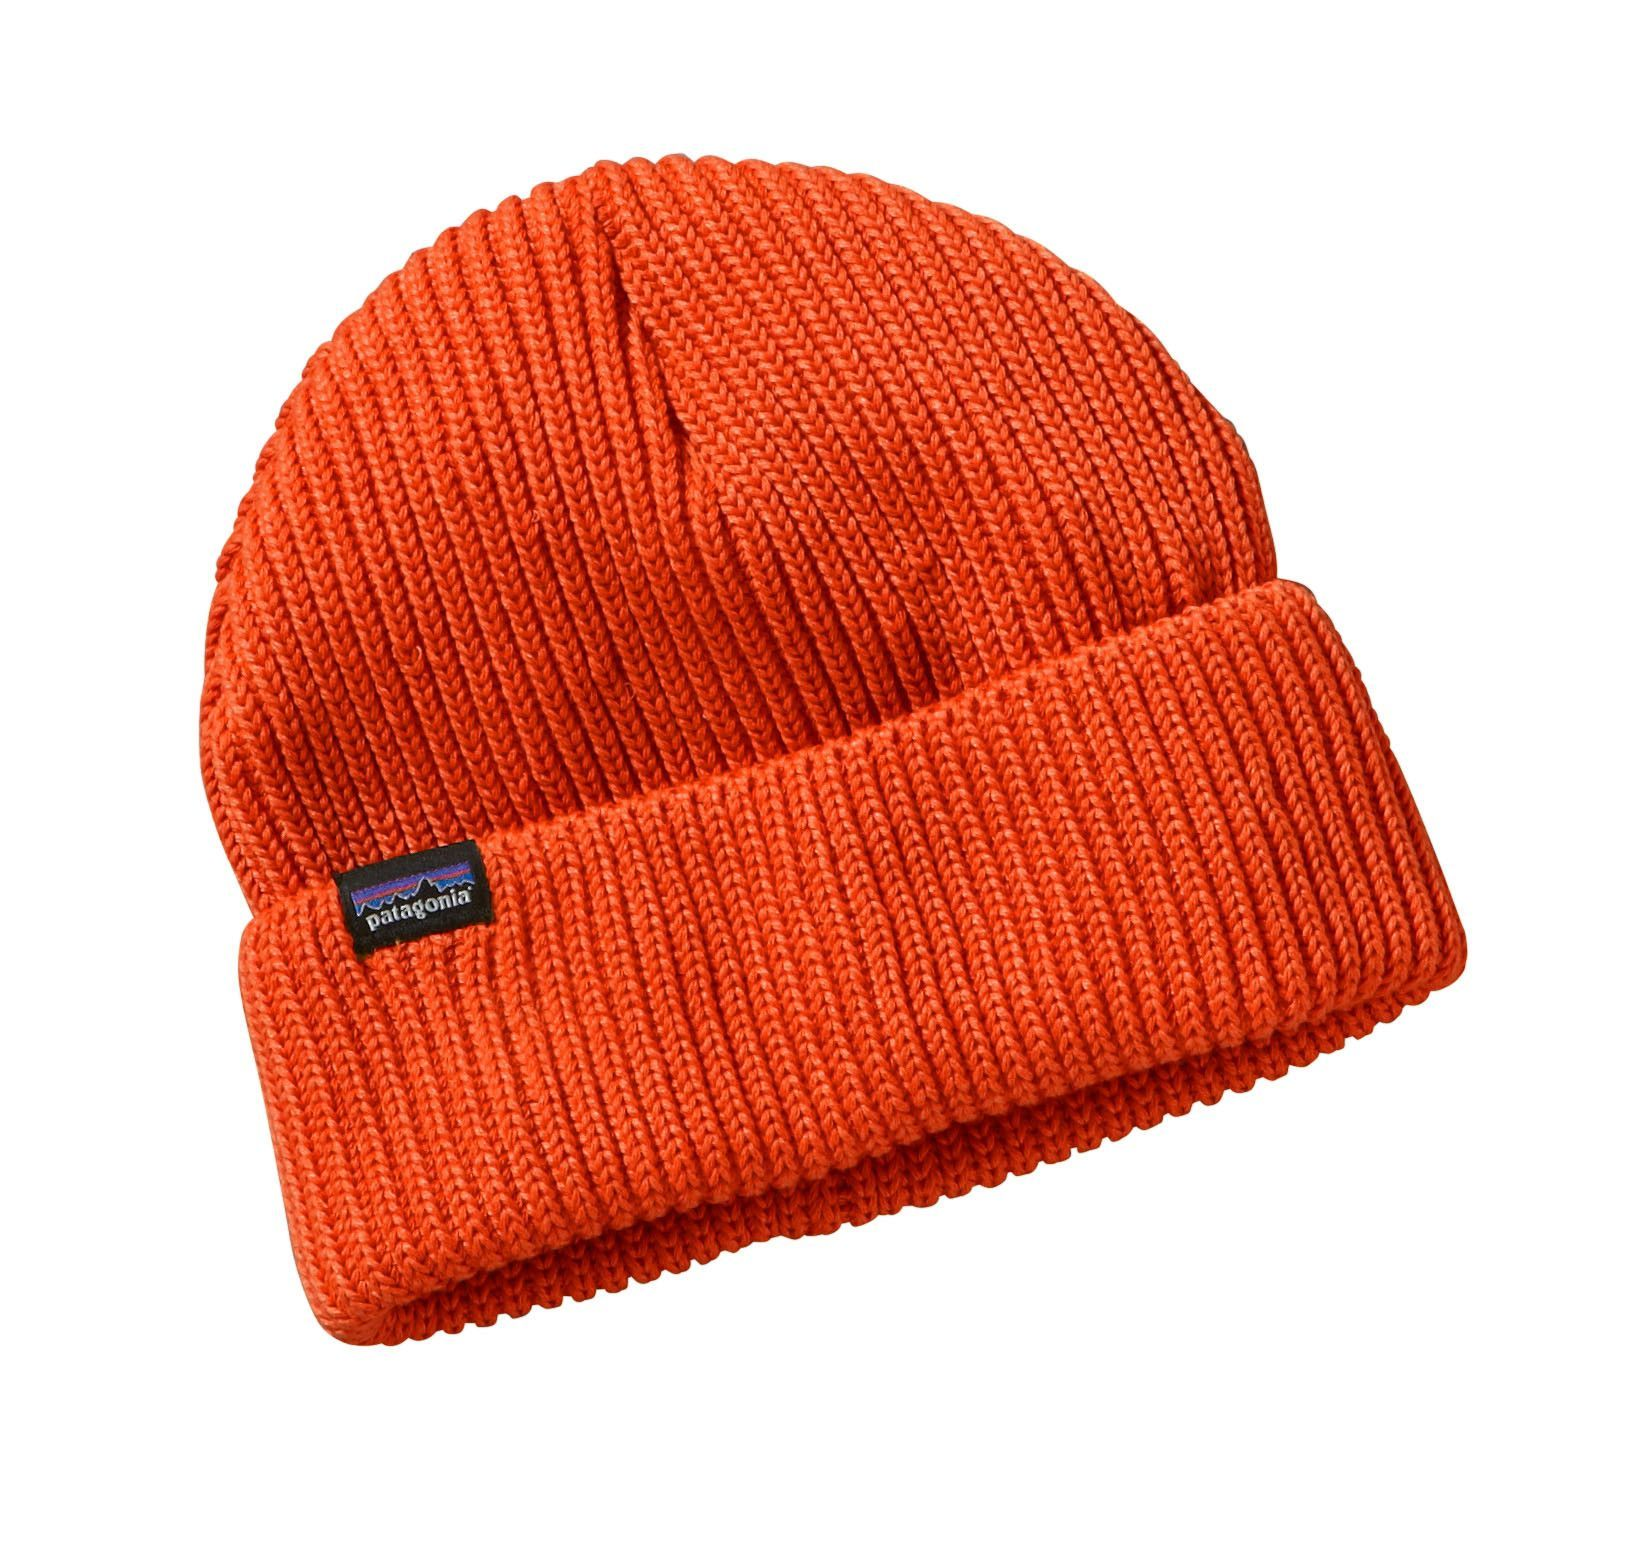 47f708919f4 Patagonia fishermans rolled beanie products jpg 1648x1551 Patagonia watch  cap